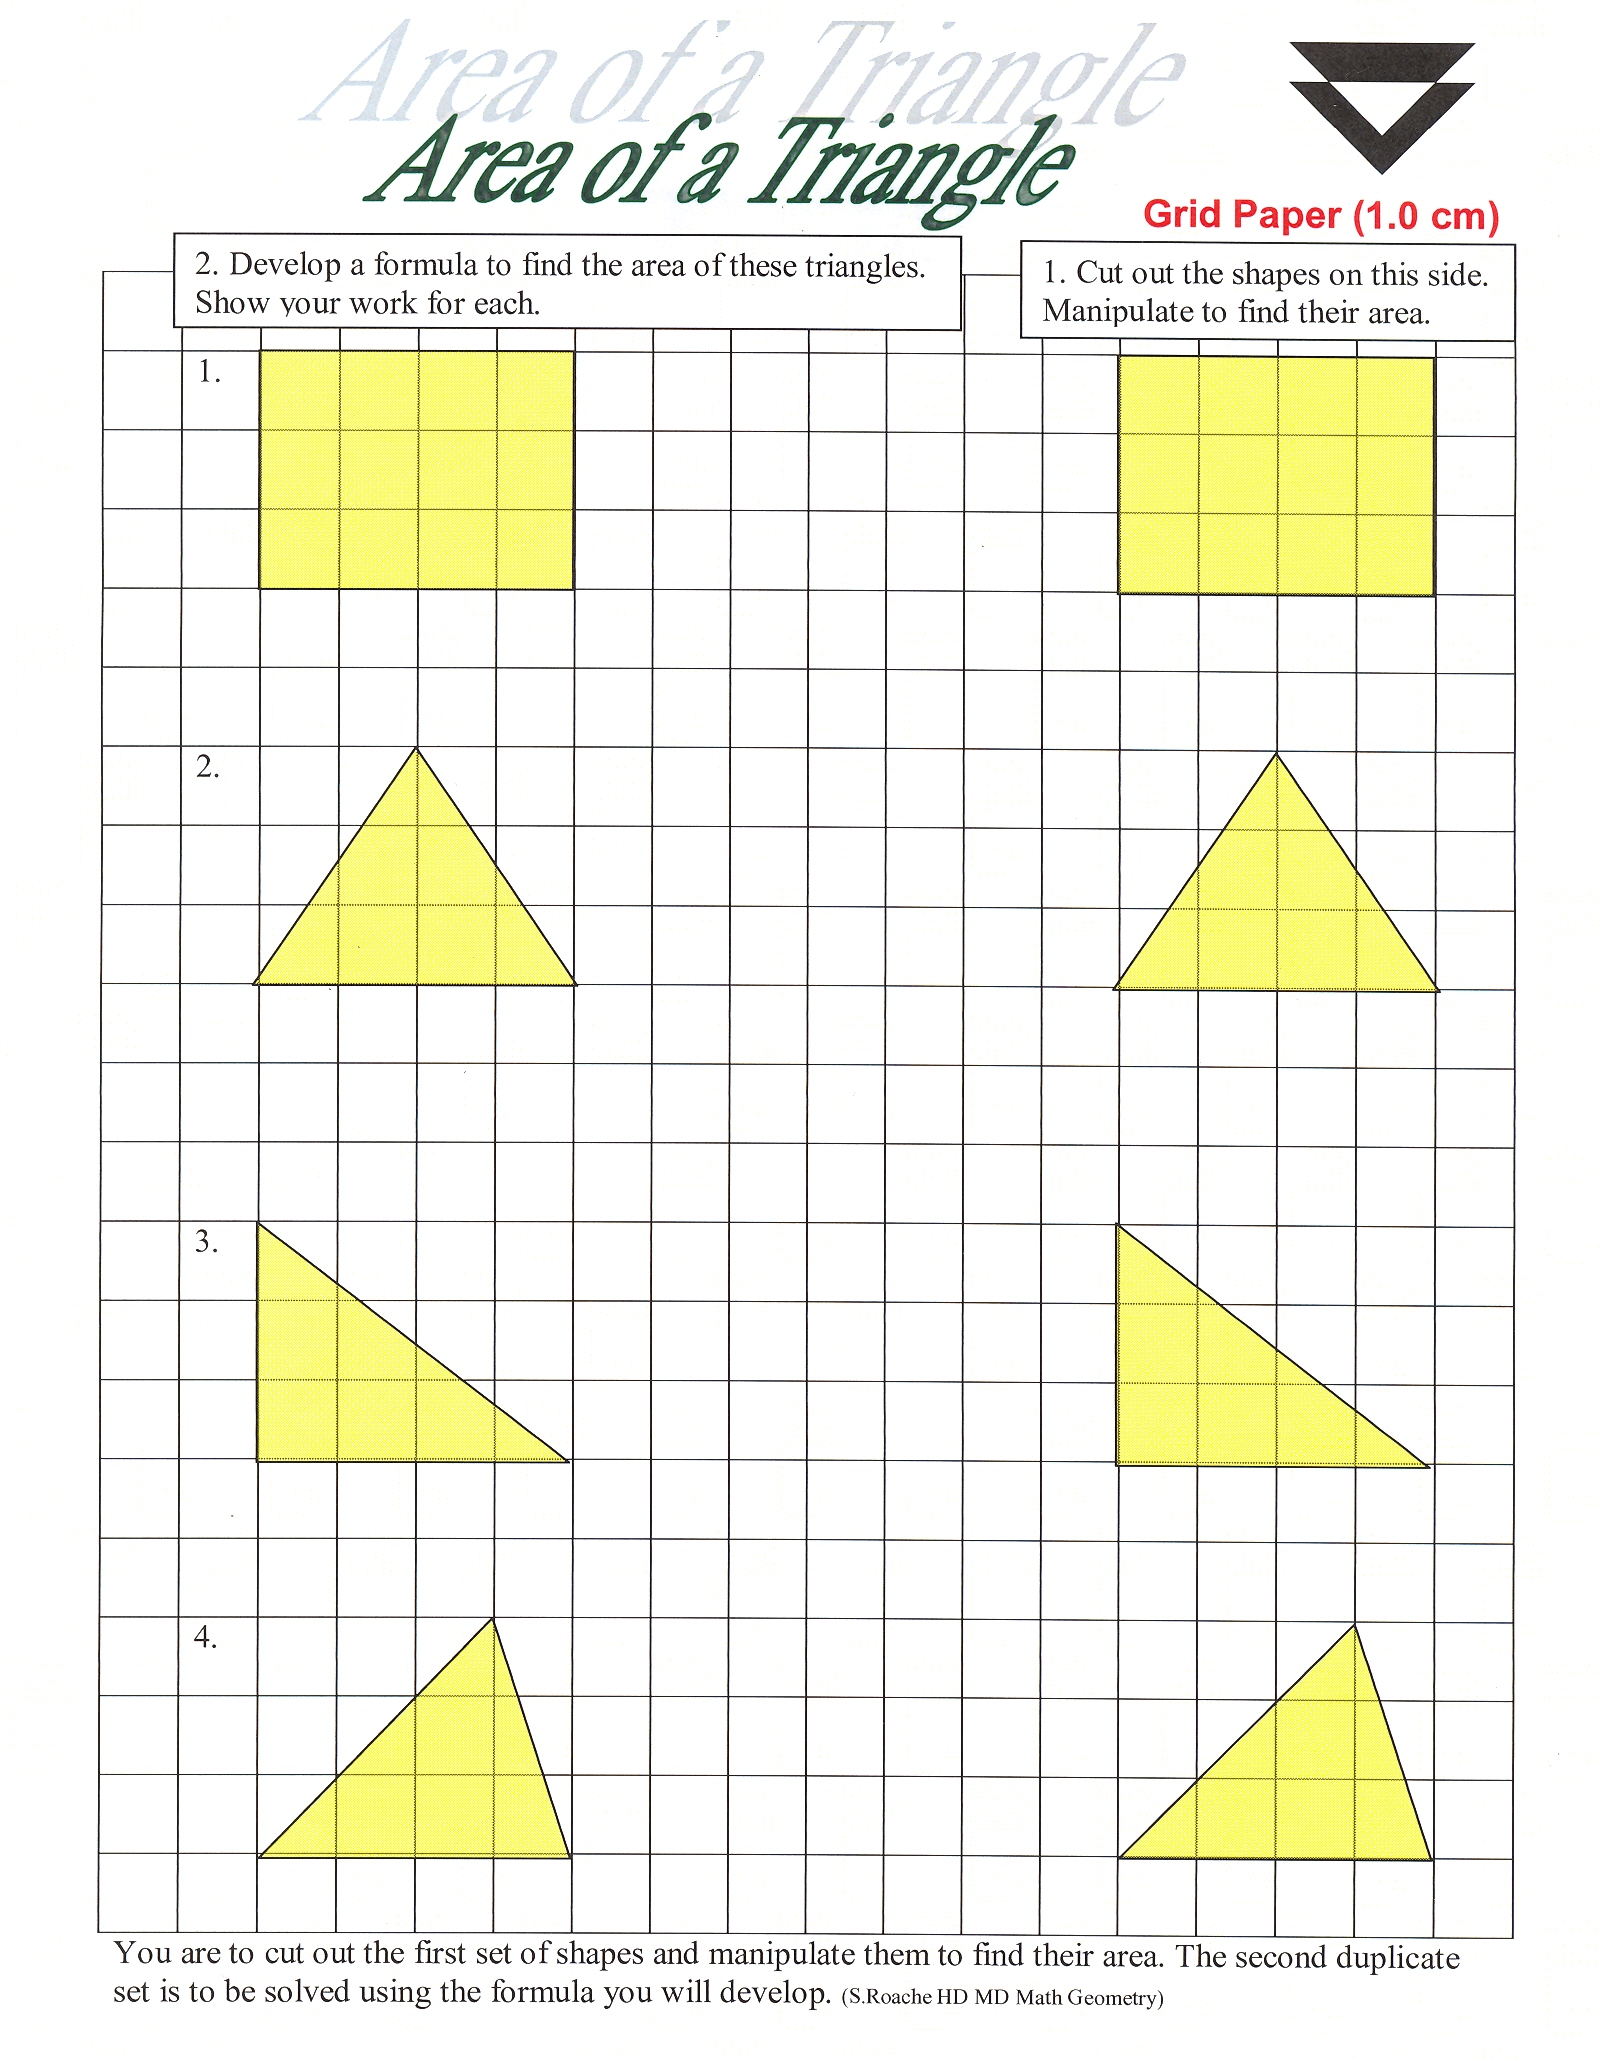 How To Find The Area Of A Triangle Not Drawn On Grid 04dec2006 14:39 963k  Example